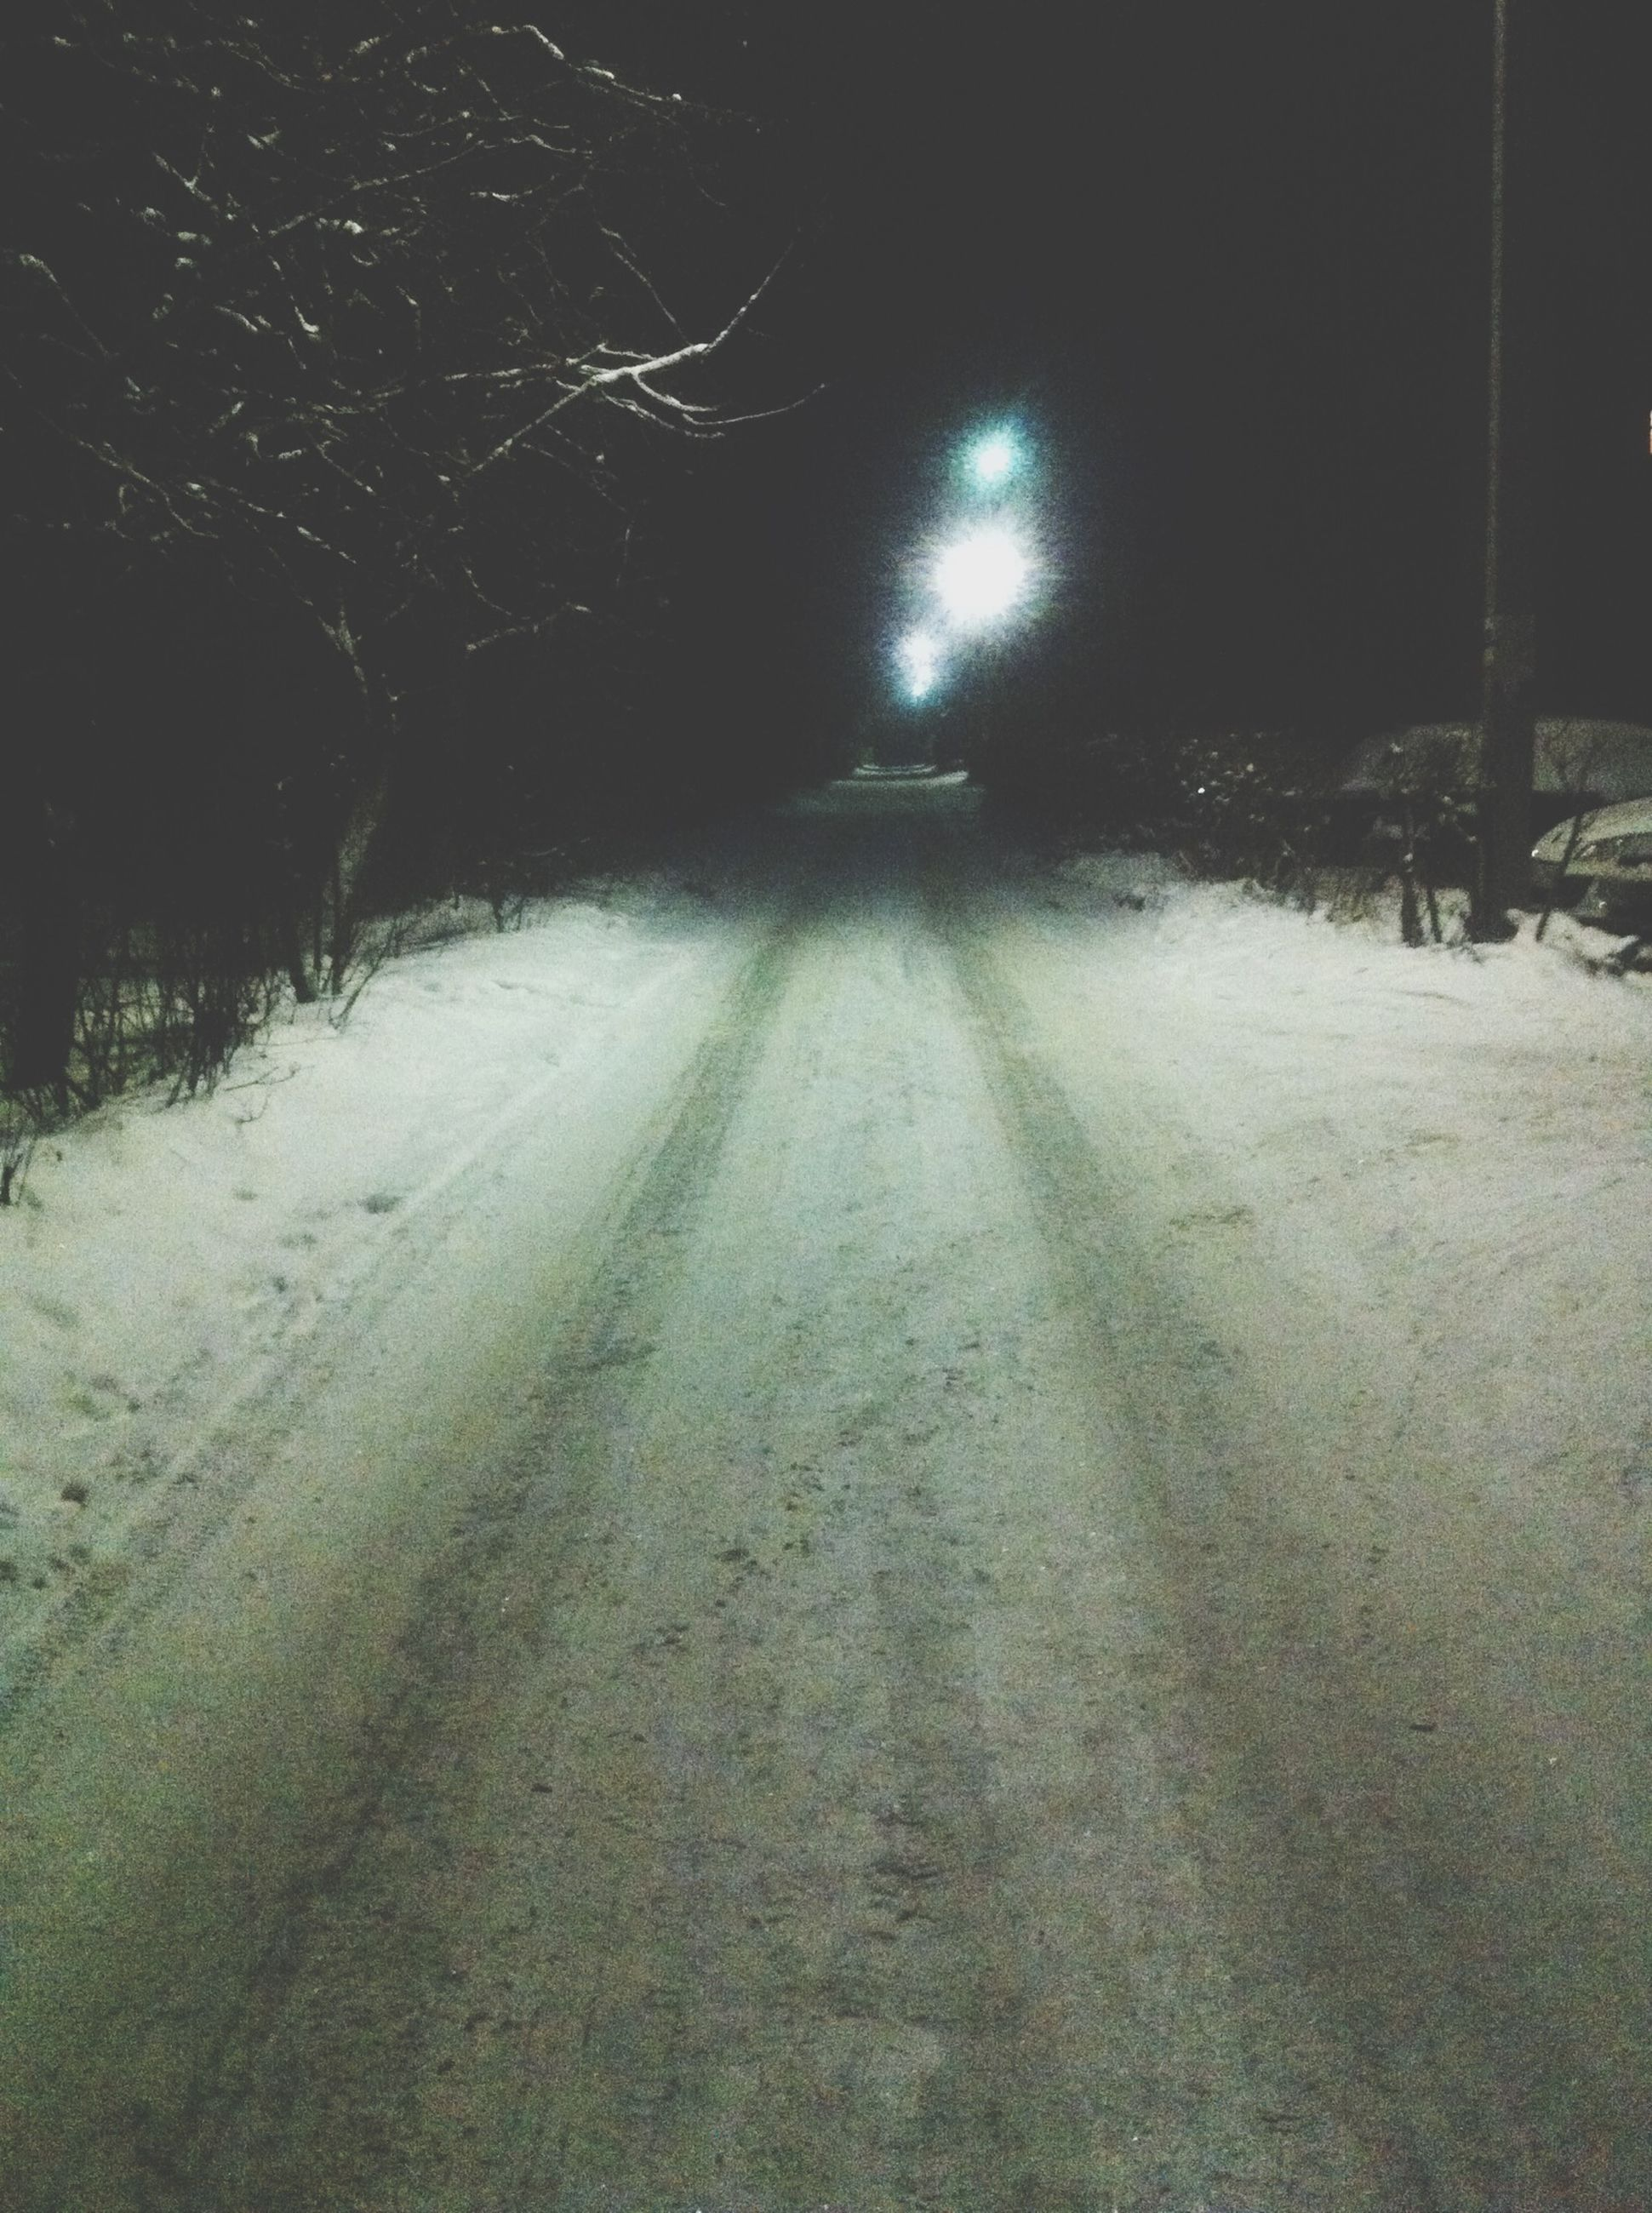 night, the way forward, illuminated, snow, winter, cold temperature, street light, transportation, road, street, weather, diminishing perspective, tree, season, lighting equipment, vanishing point, outdoors, nature, empty, no people